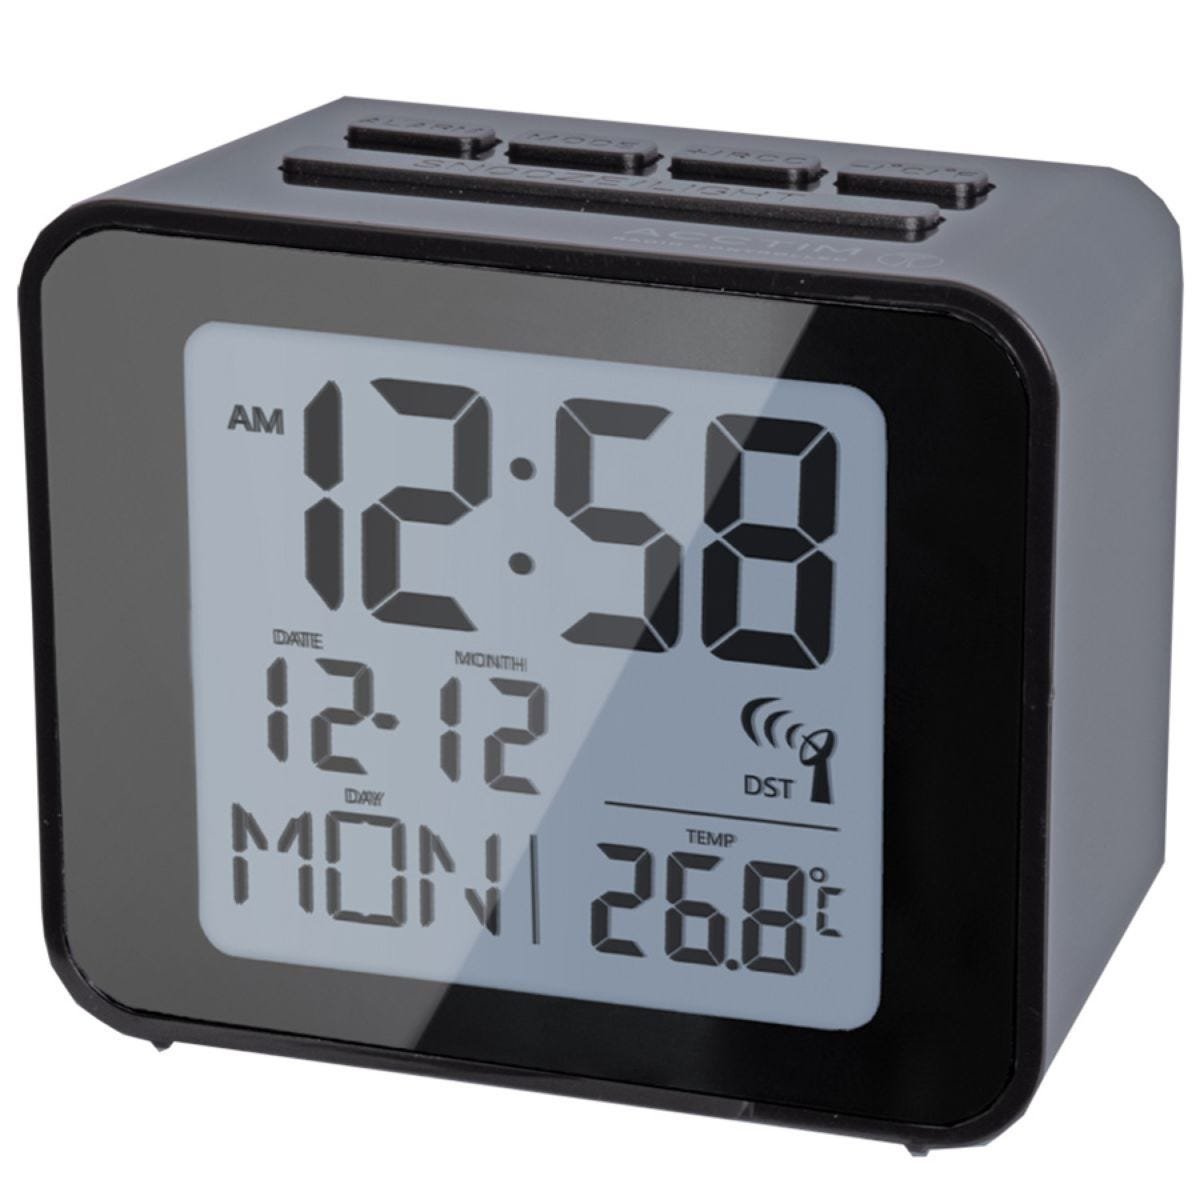 Acctim Radio Controlled Alarm Clock - Black